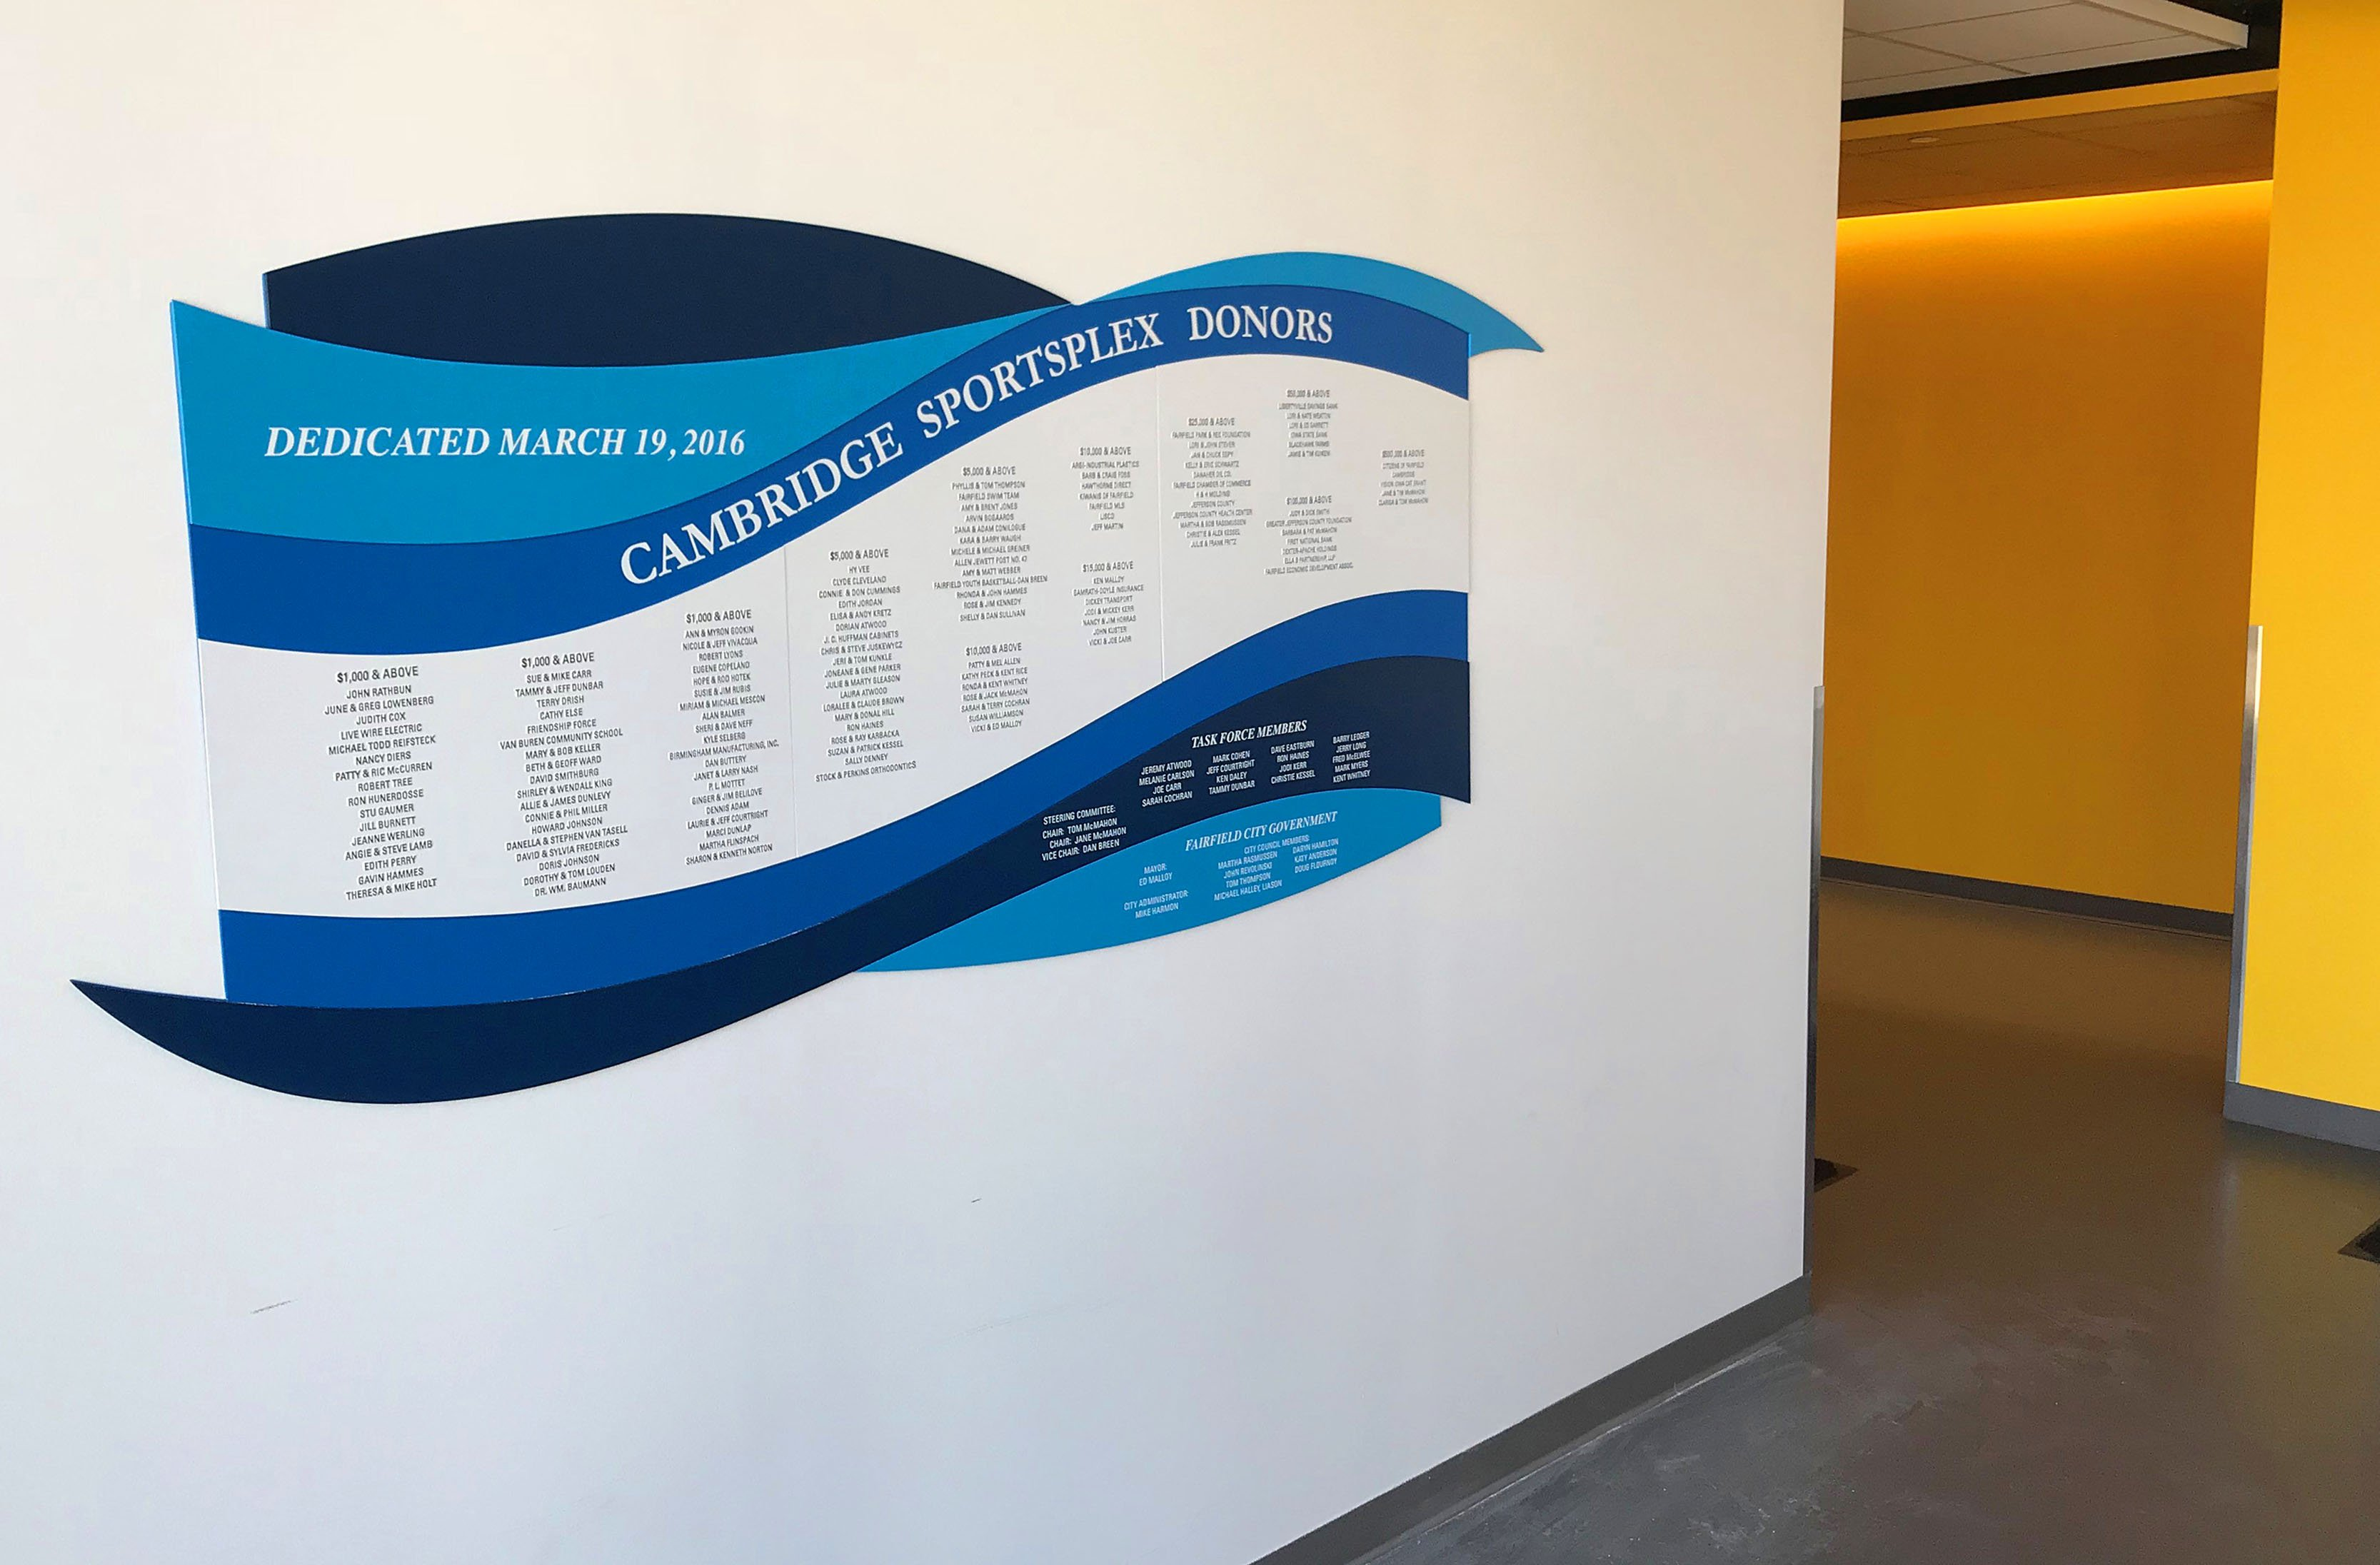 PEC makes waves with new donor wall at Cambridge SportsPlex